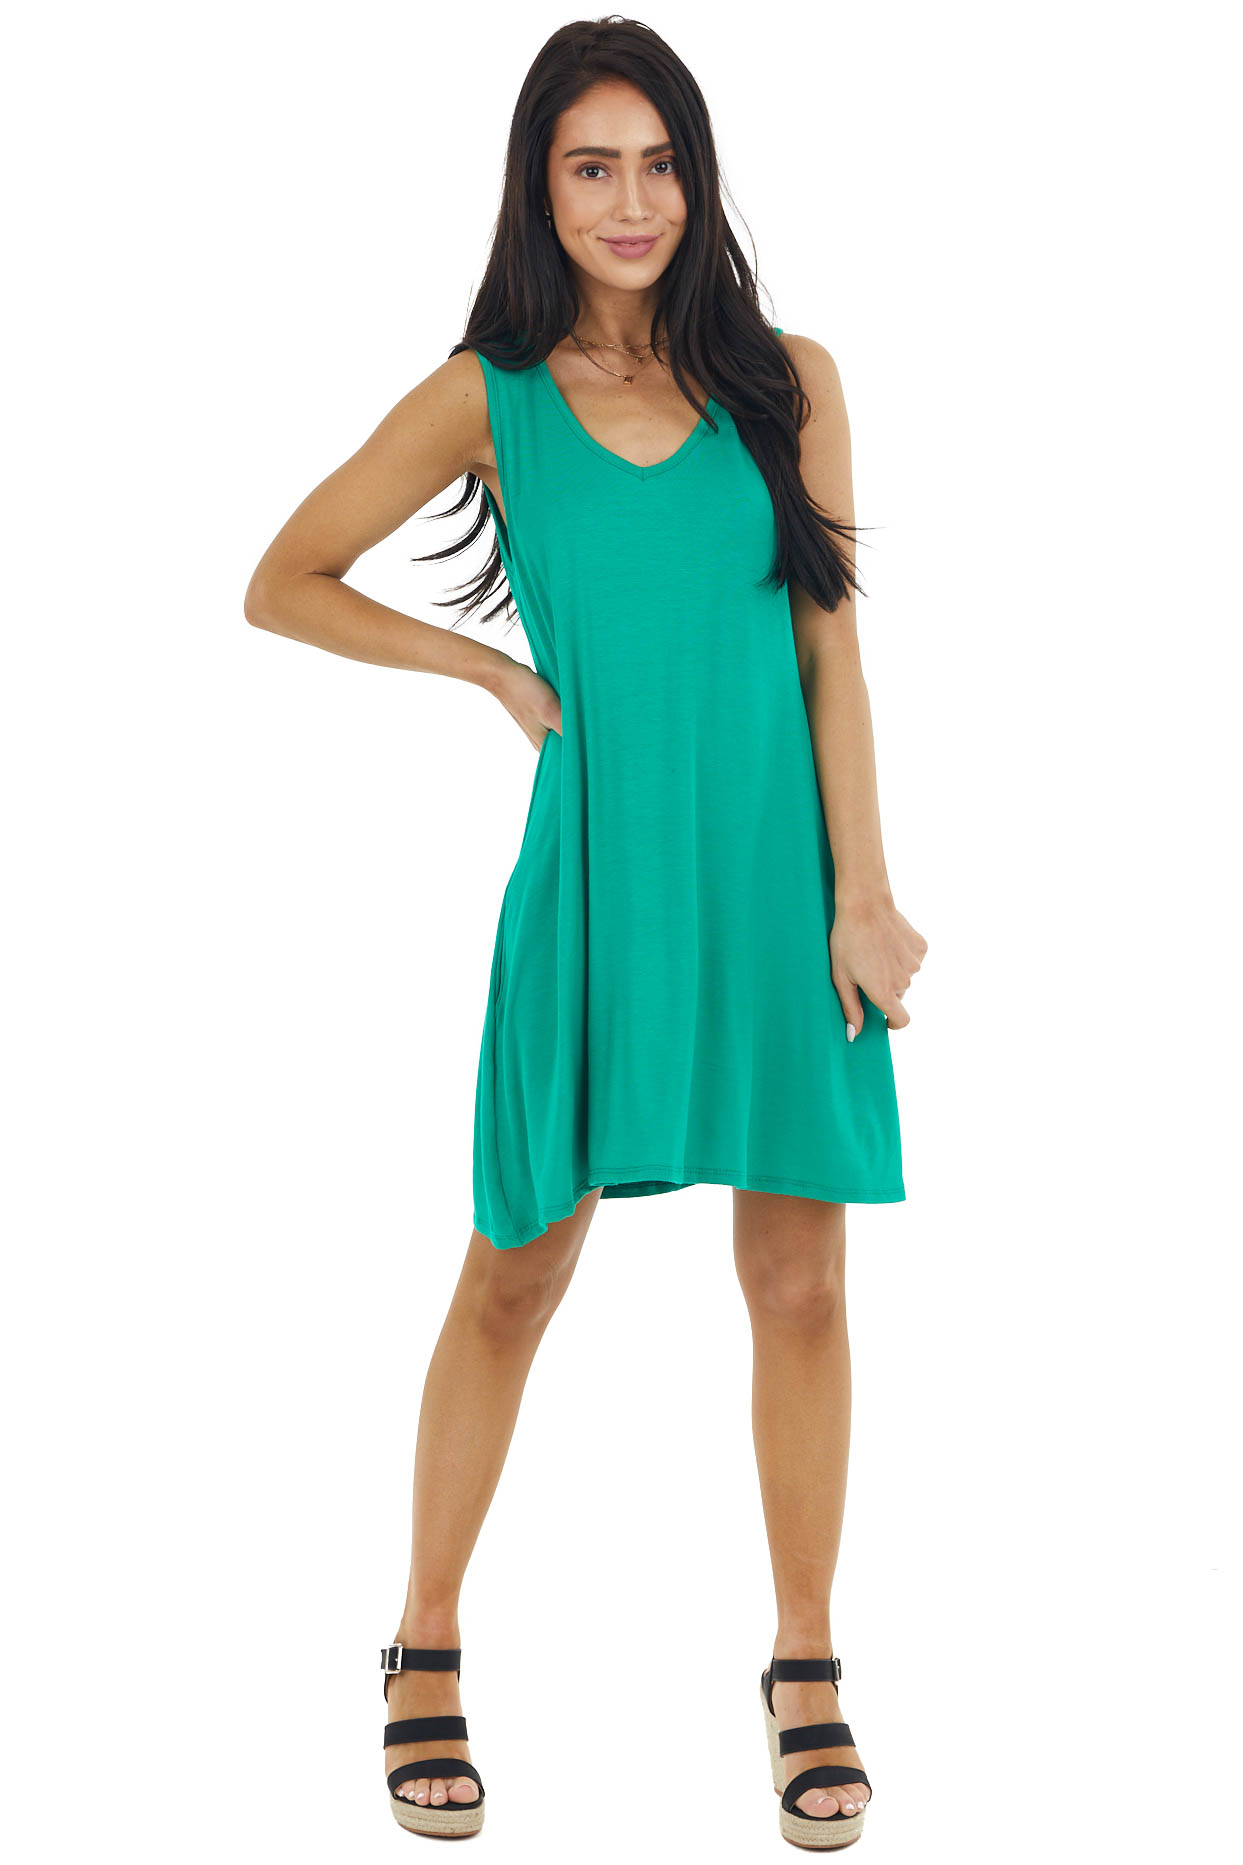 Shamrock Green V Neck Sleeveless Knit Short Swing Dress